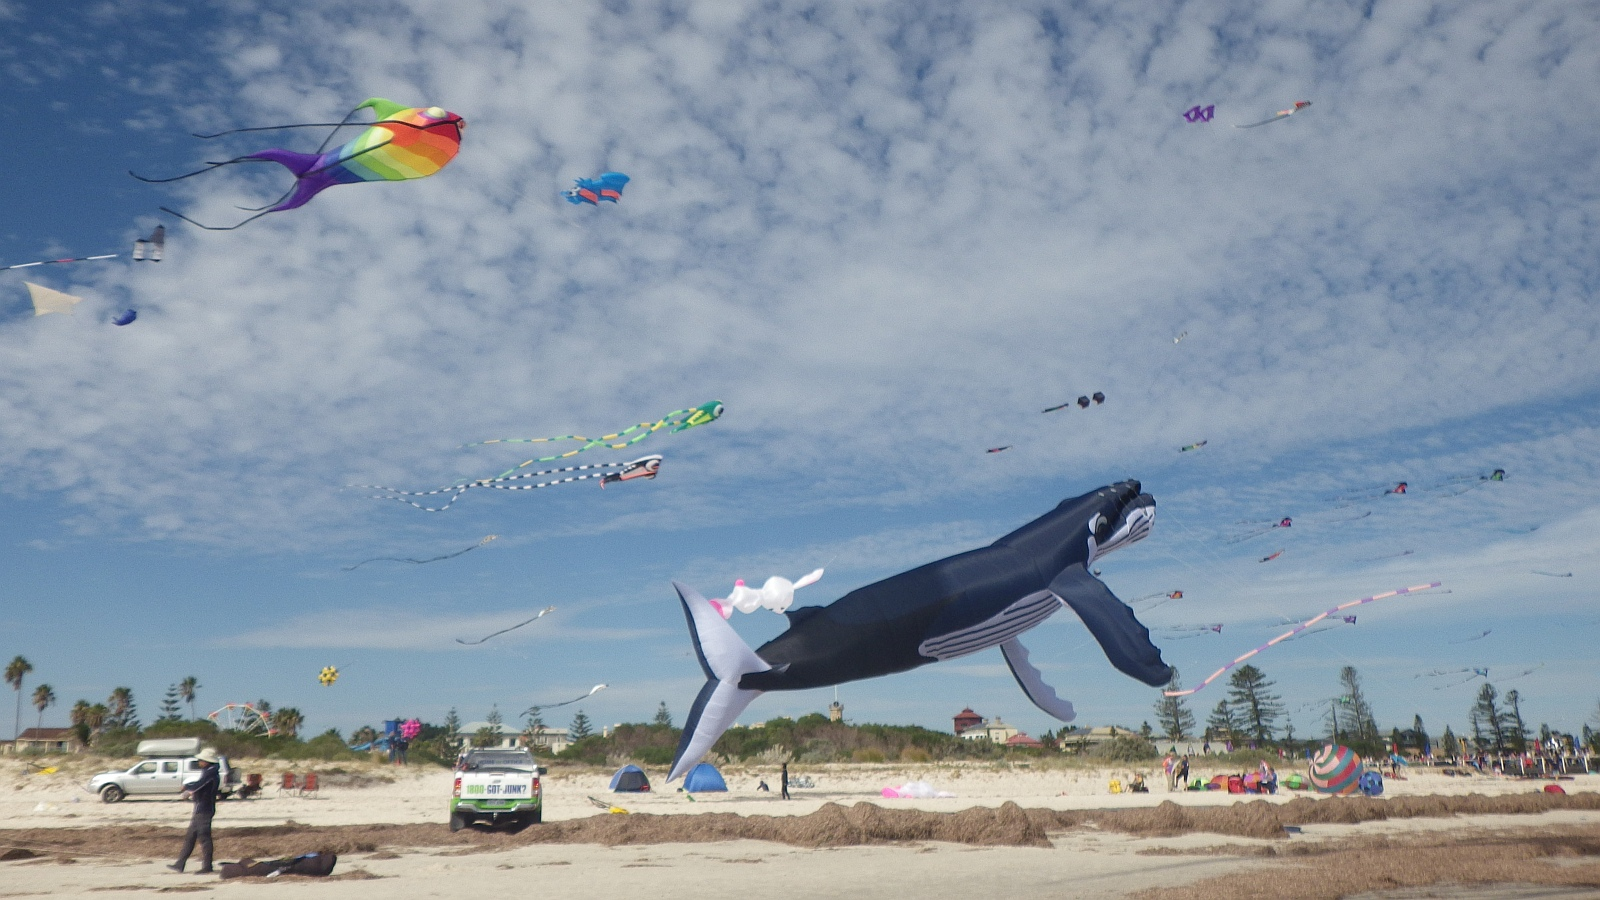 AIKF 2017. The large Whale inflatable viewed from the side, plus other kites.